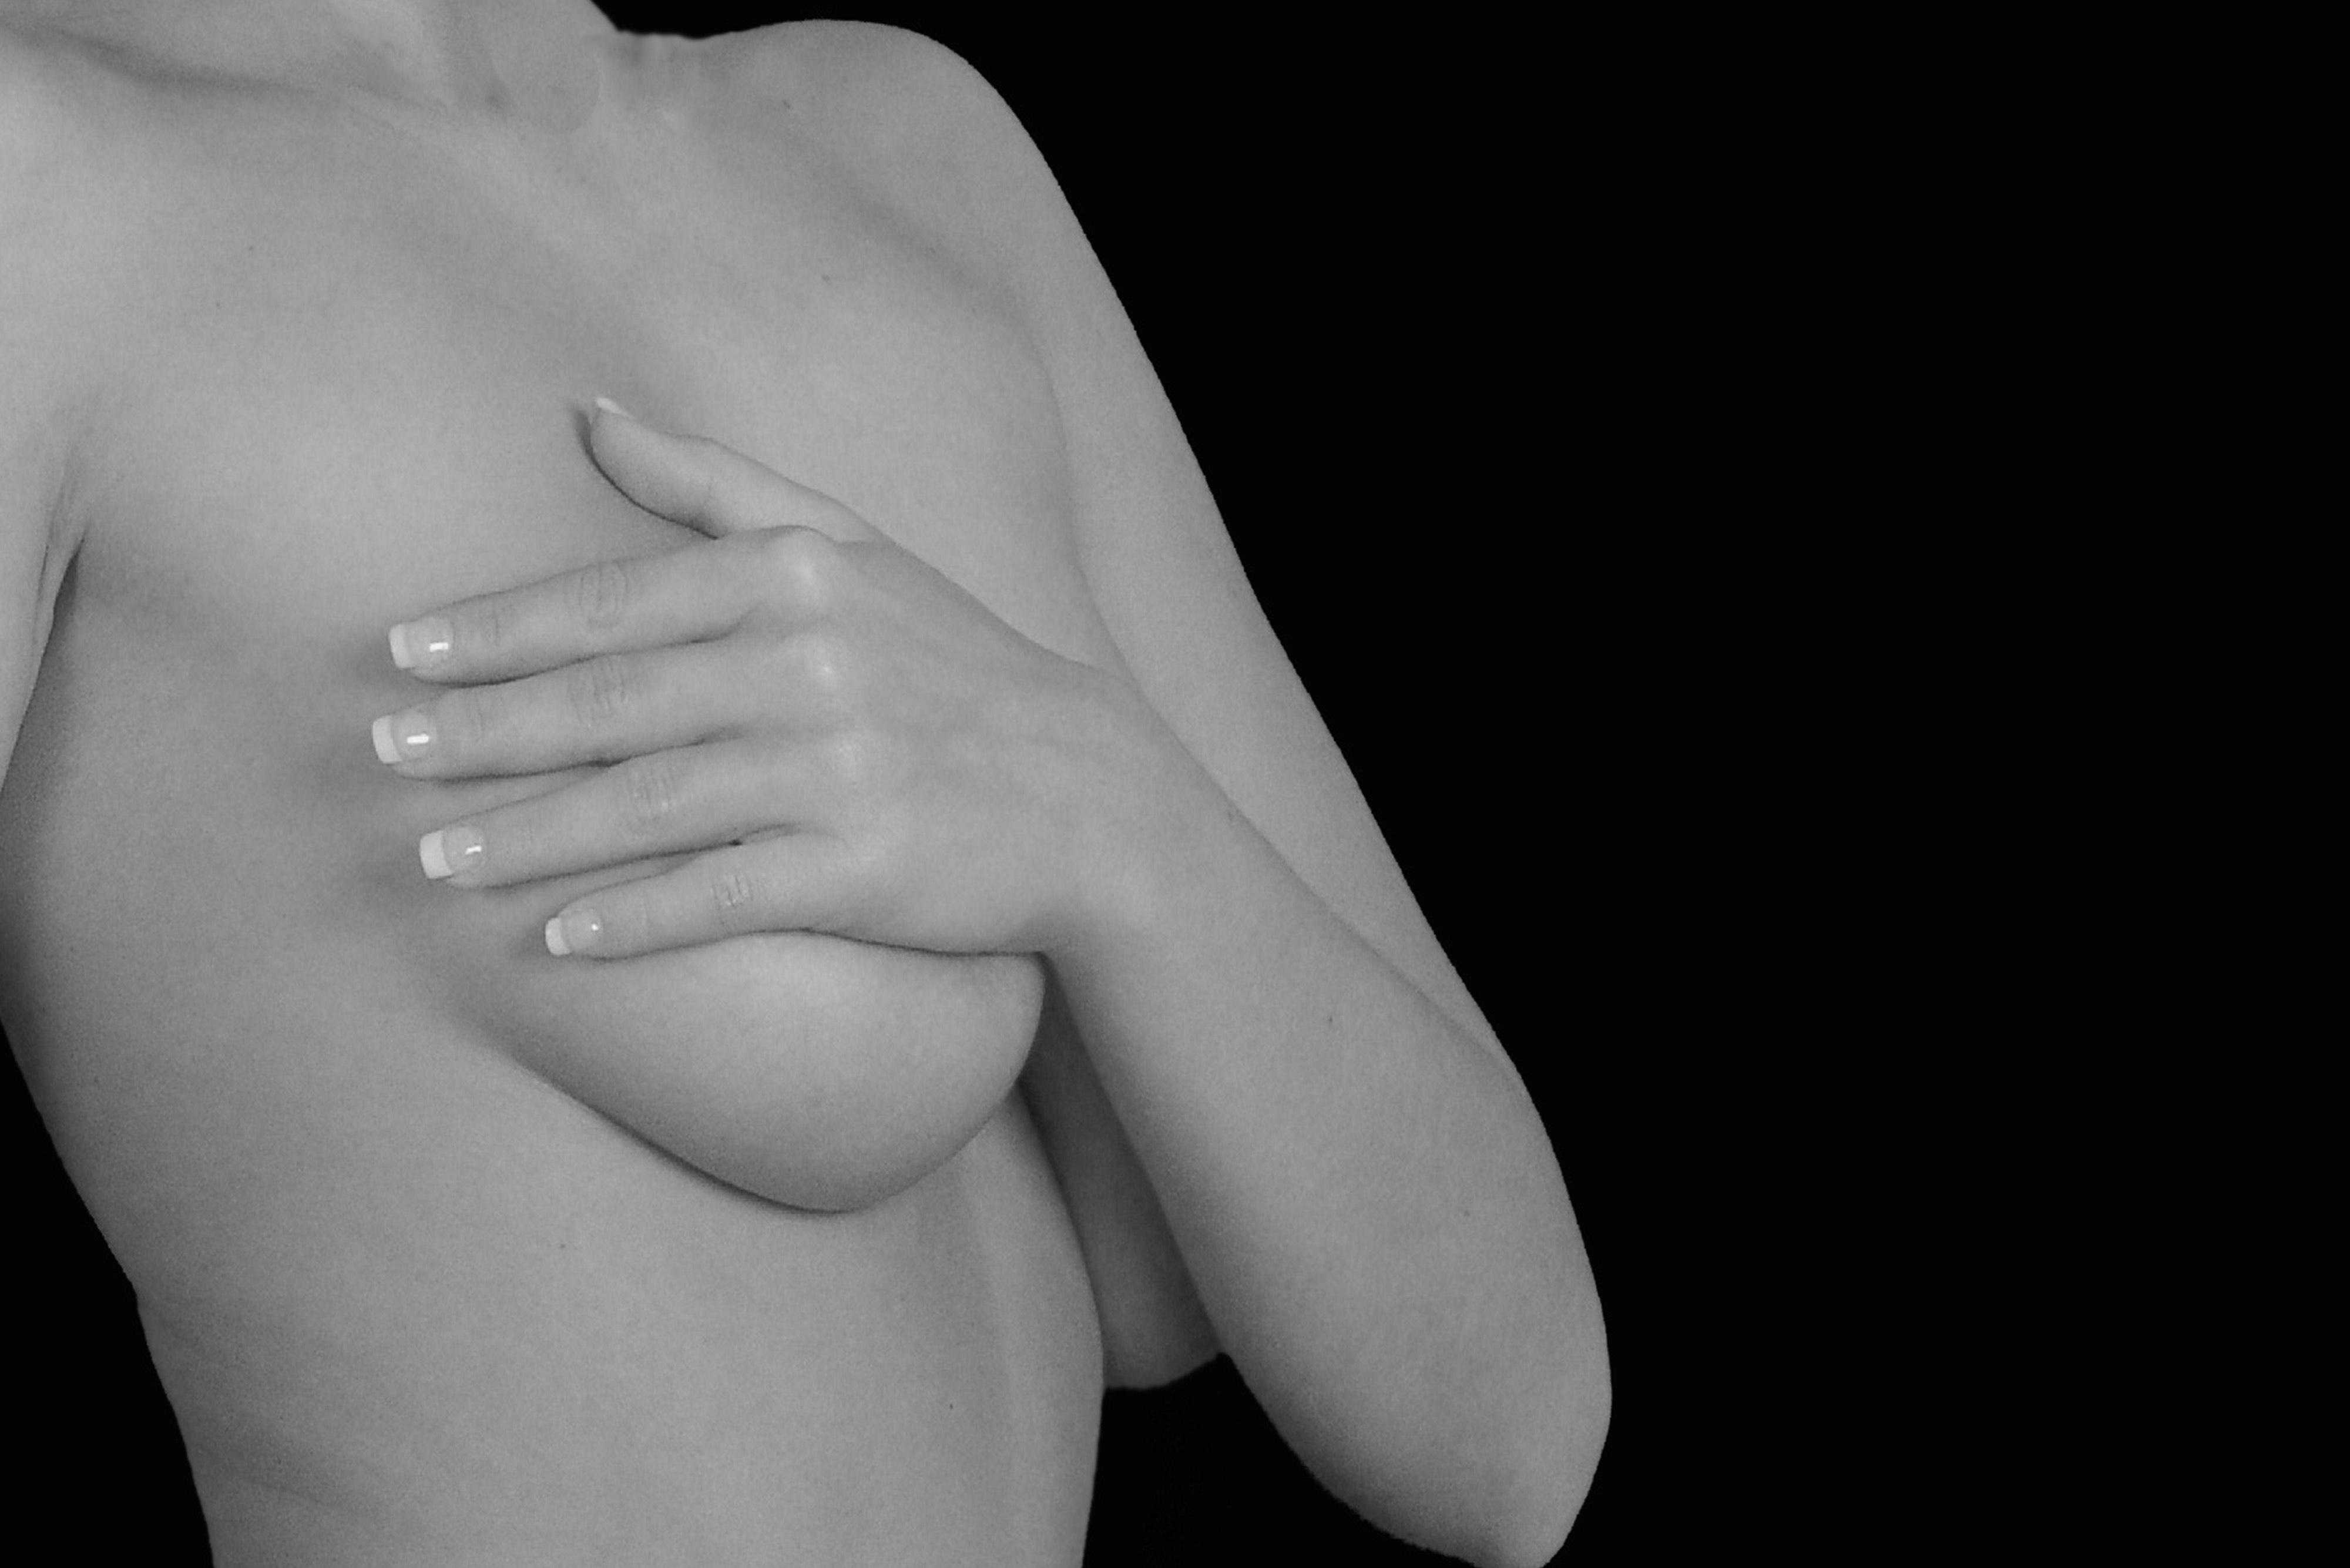 BREAST DISCOMFORT AND PAIN